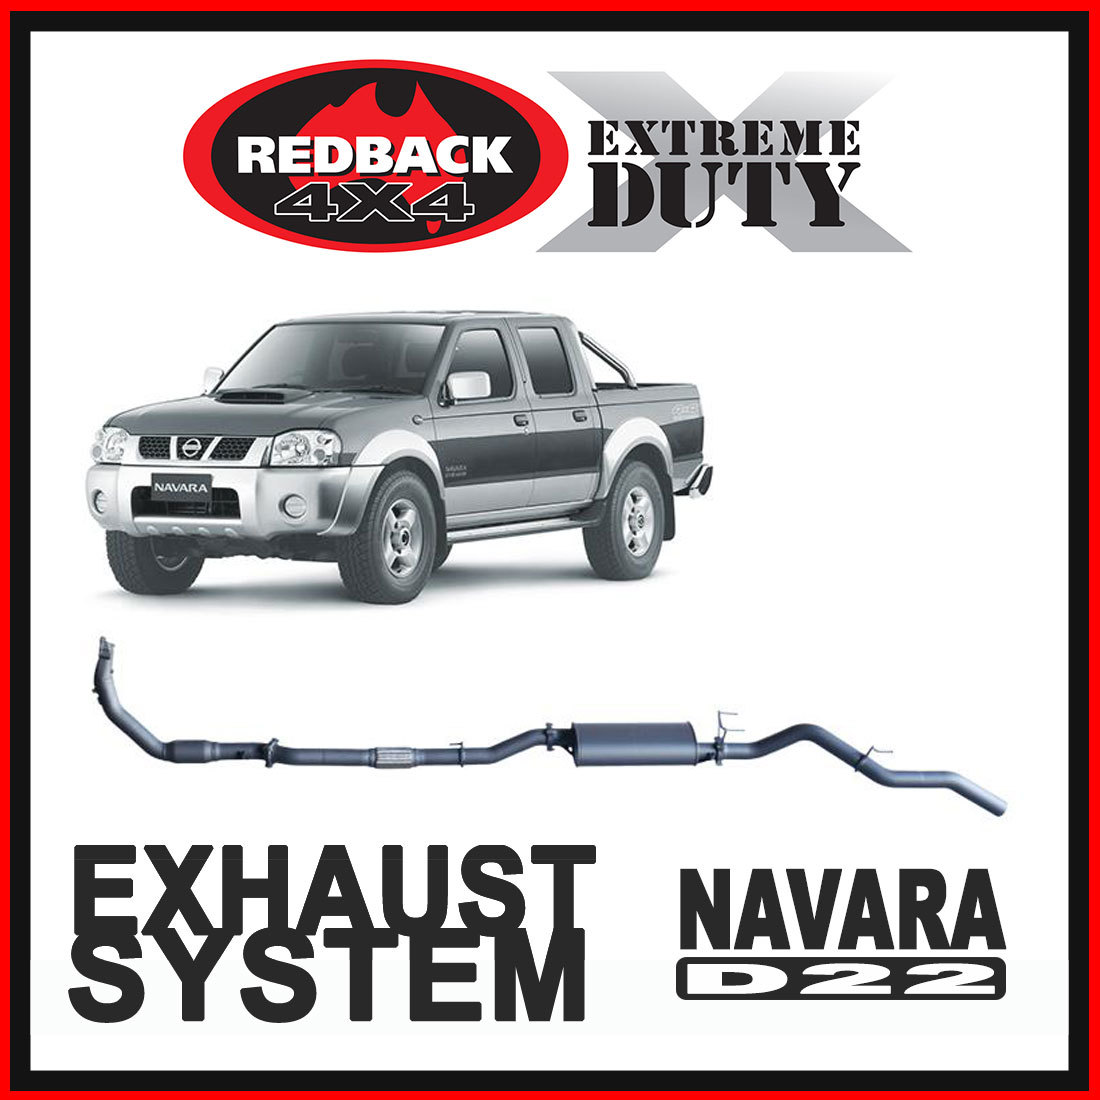 Nissan Navara D22 3L 2001 - 2006 Redback Extreme Duty Exhaust image